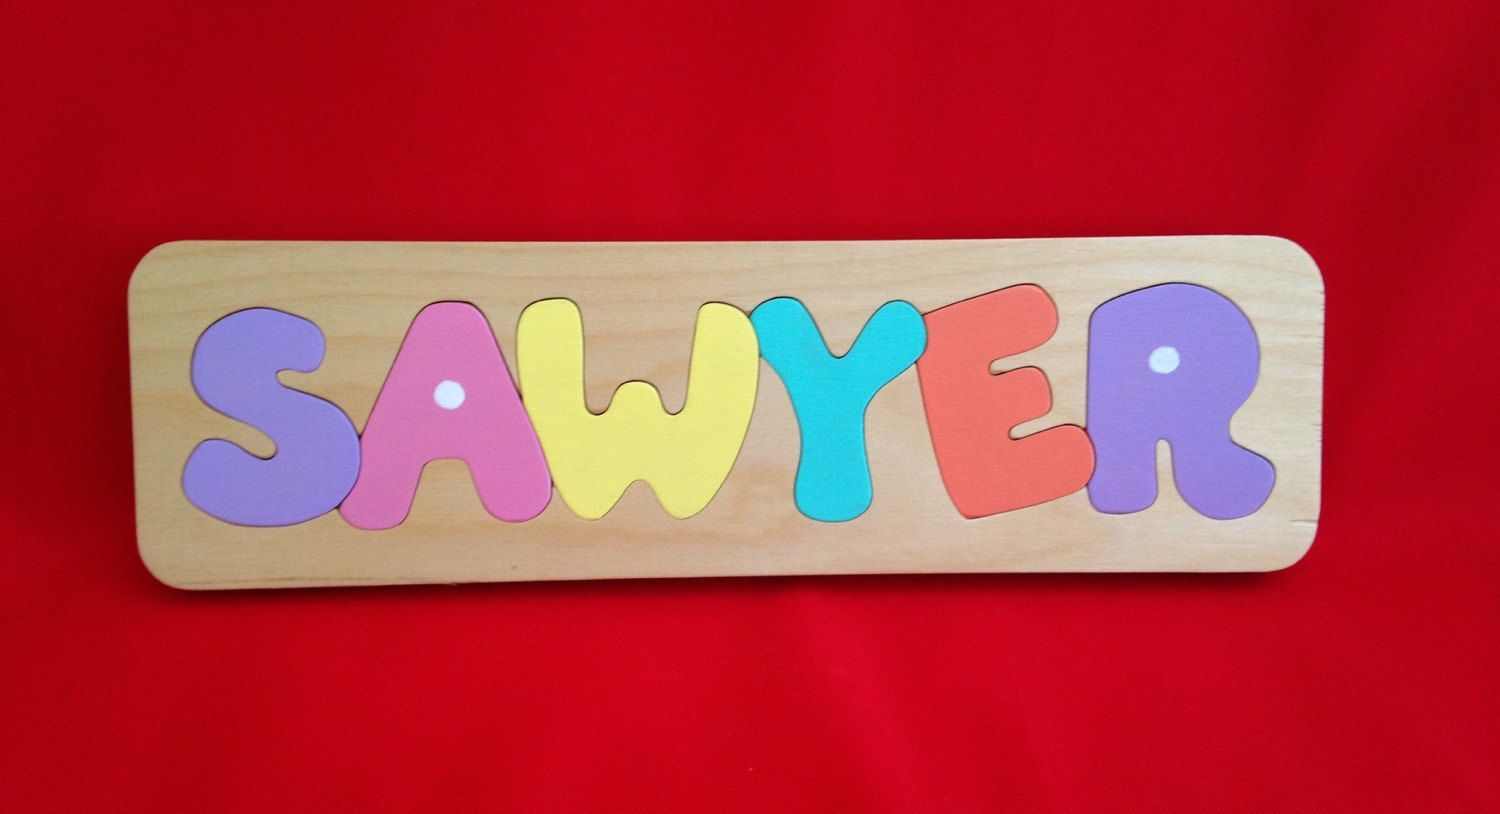 Personalized baby gift puzzle great first birthday or baby shower personalized baby gift puzzle great first birthday or baby shower gift for boy or girl teach your child their name usd by papaspuzzleshop negle Image collections